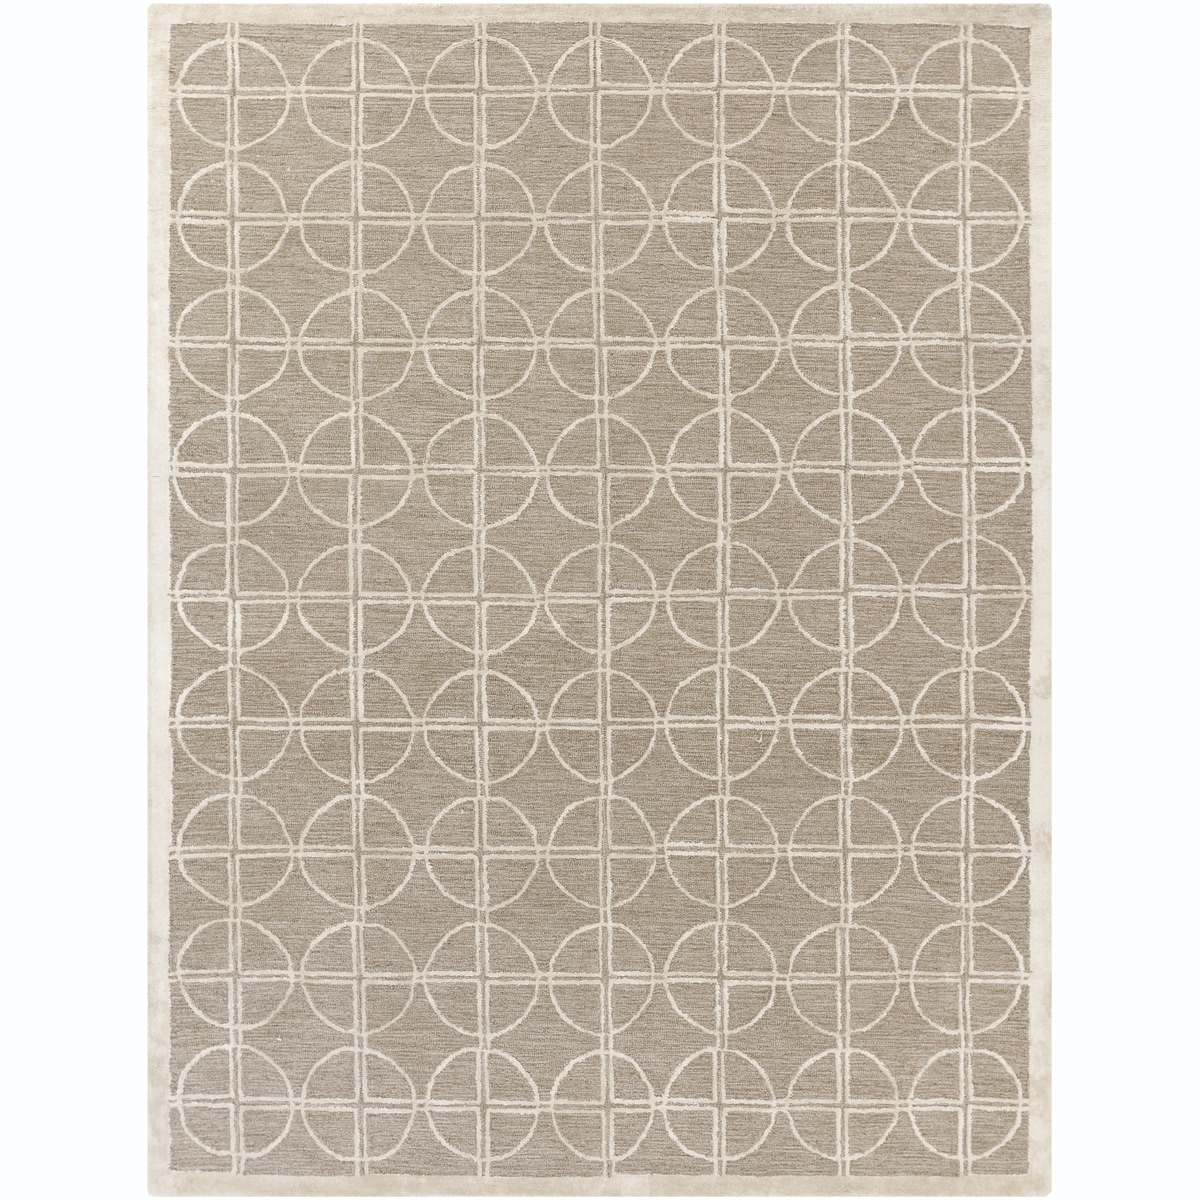 Hand-tufted Mandara Beige Wool Blend Rug (7'9 x 10'6)